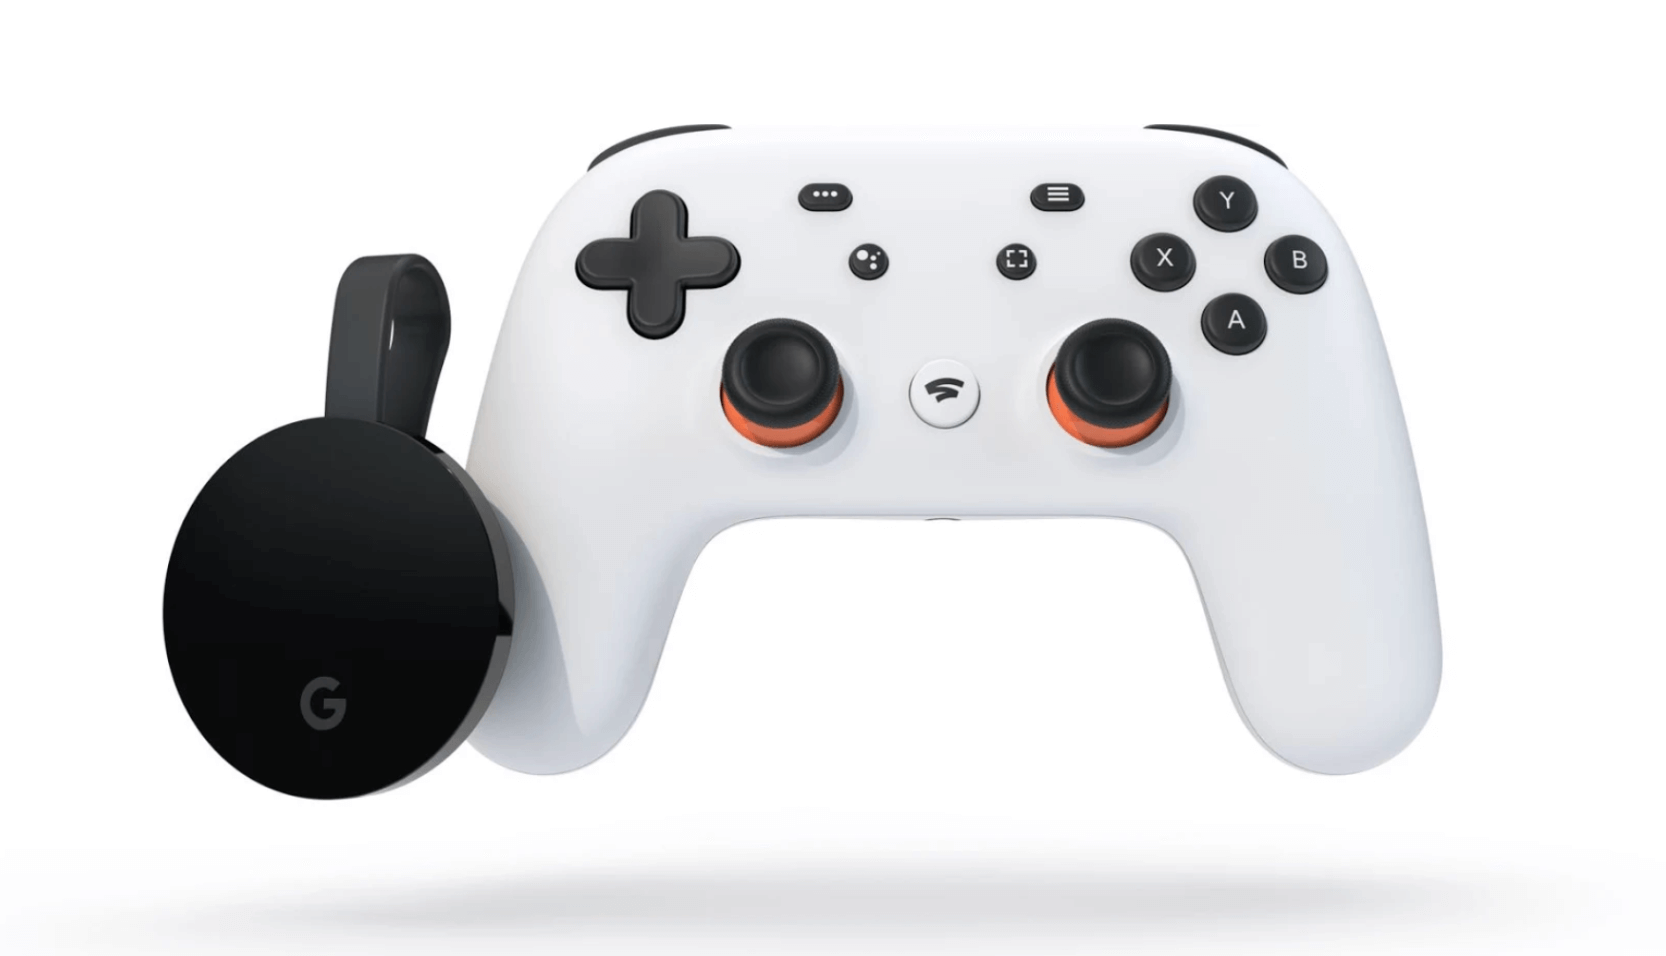 A photo of Google's Stadia gaming controller